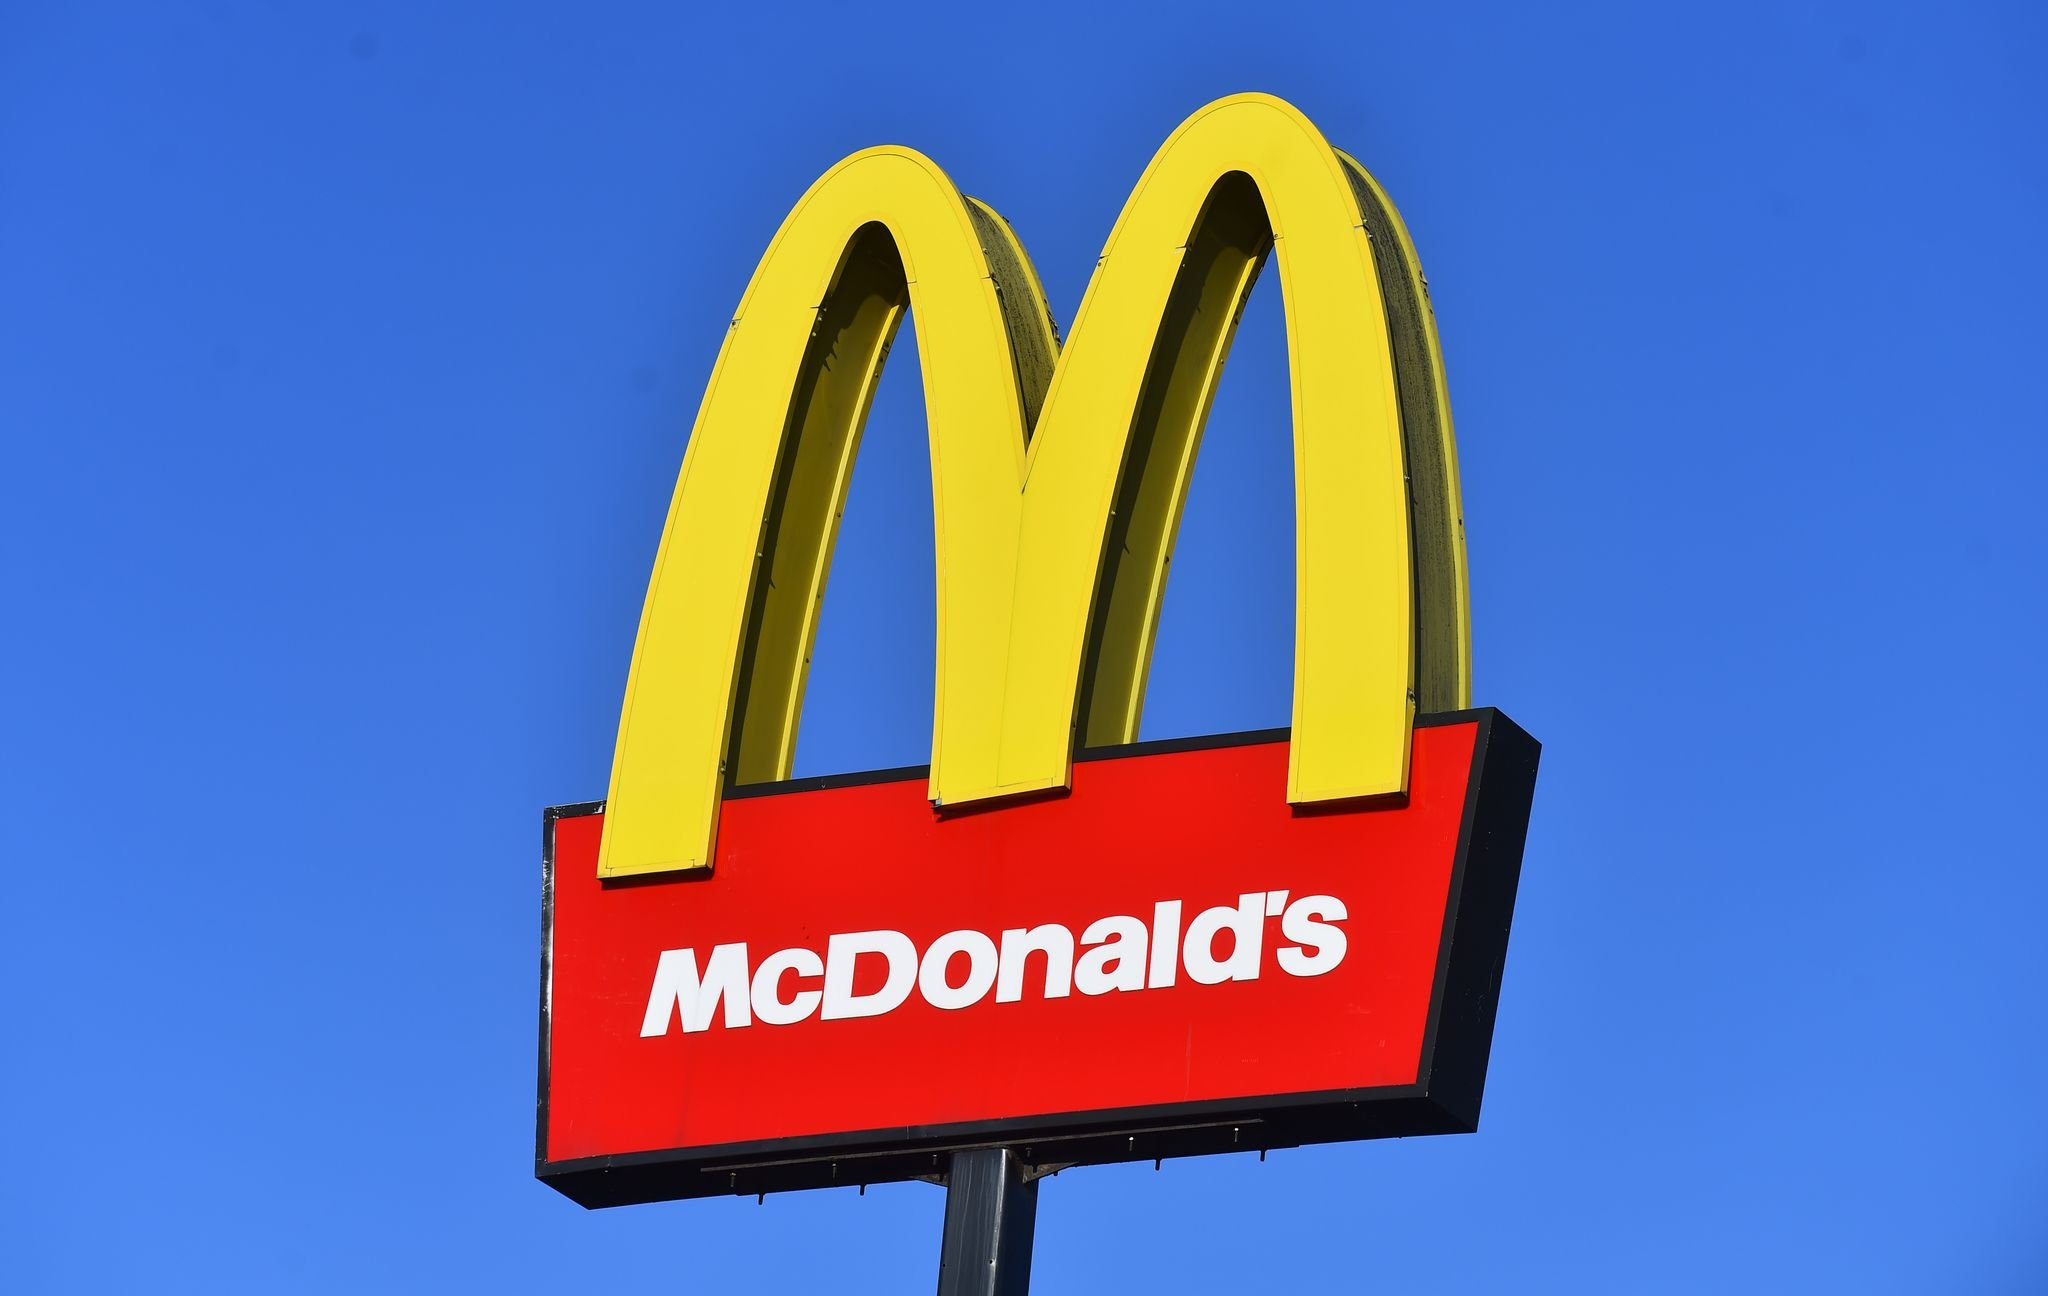 McDonald's trademark sign captured on November 13, 2020 in Staffordshire.   Source: Getty Images